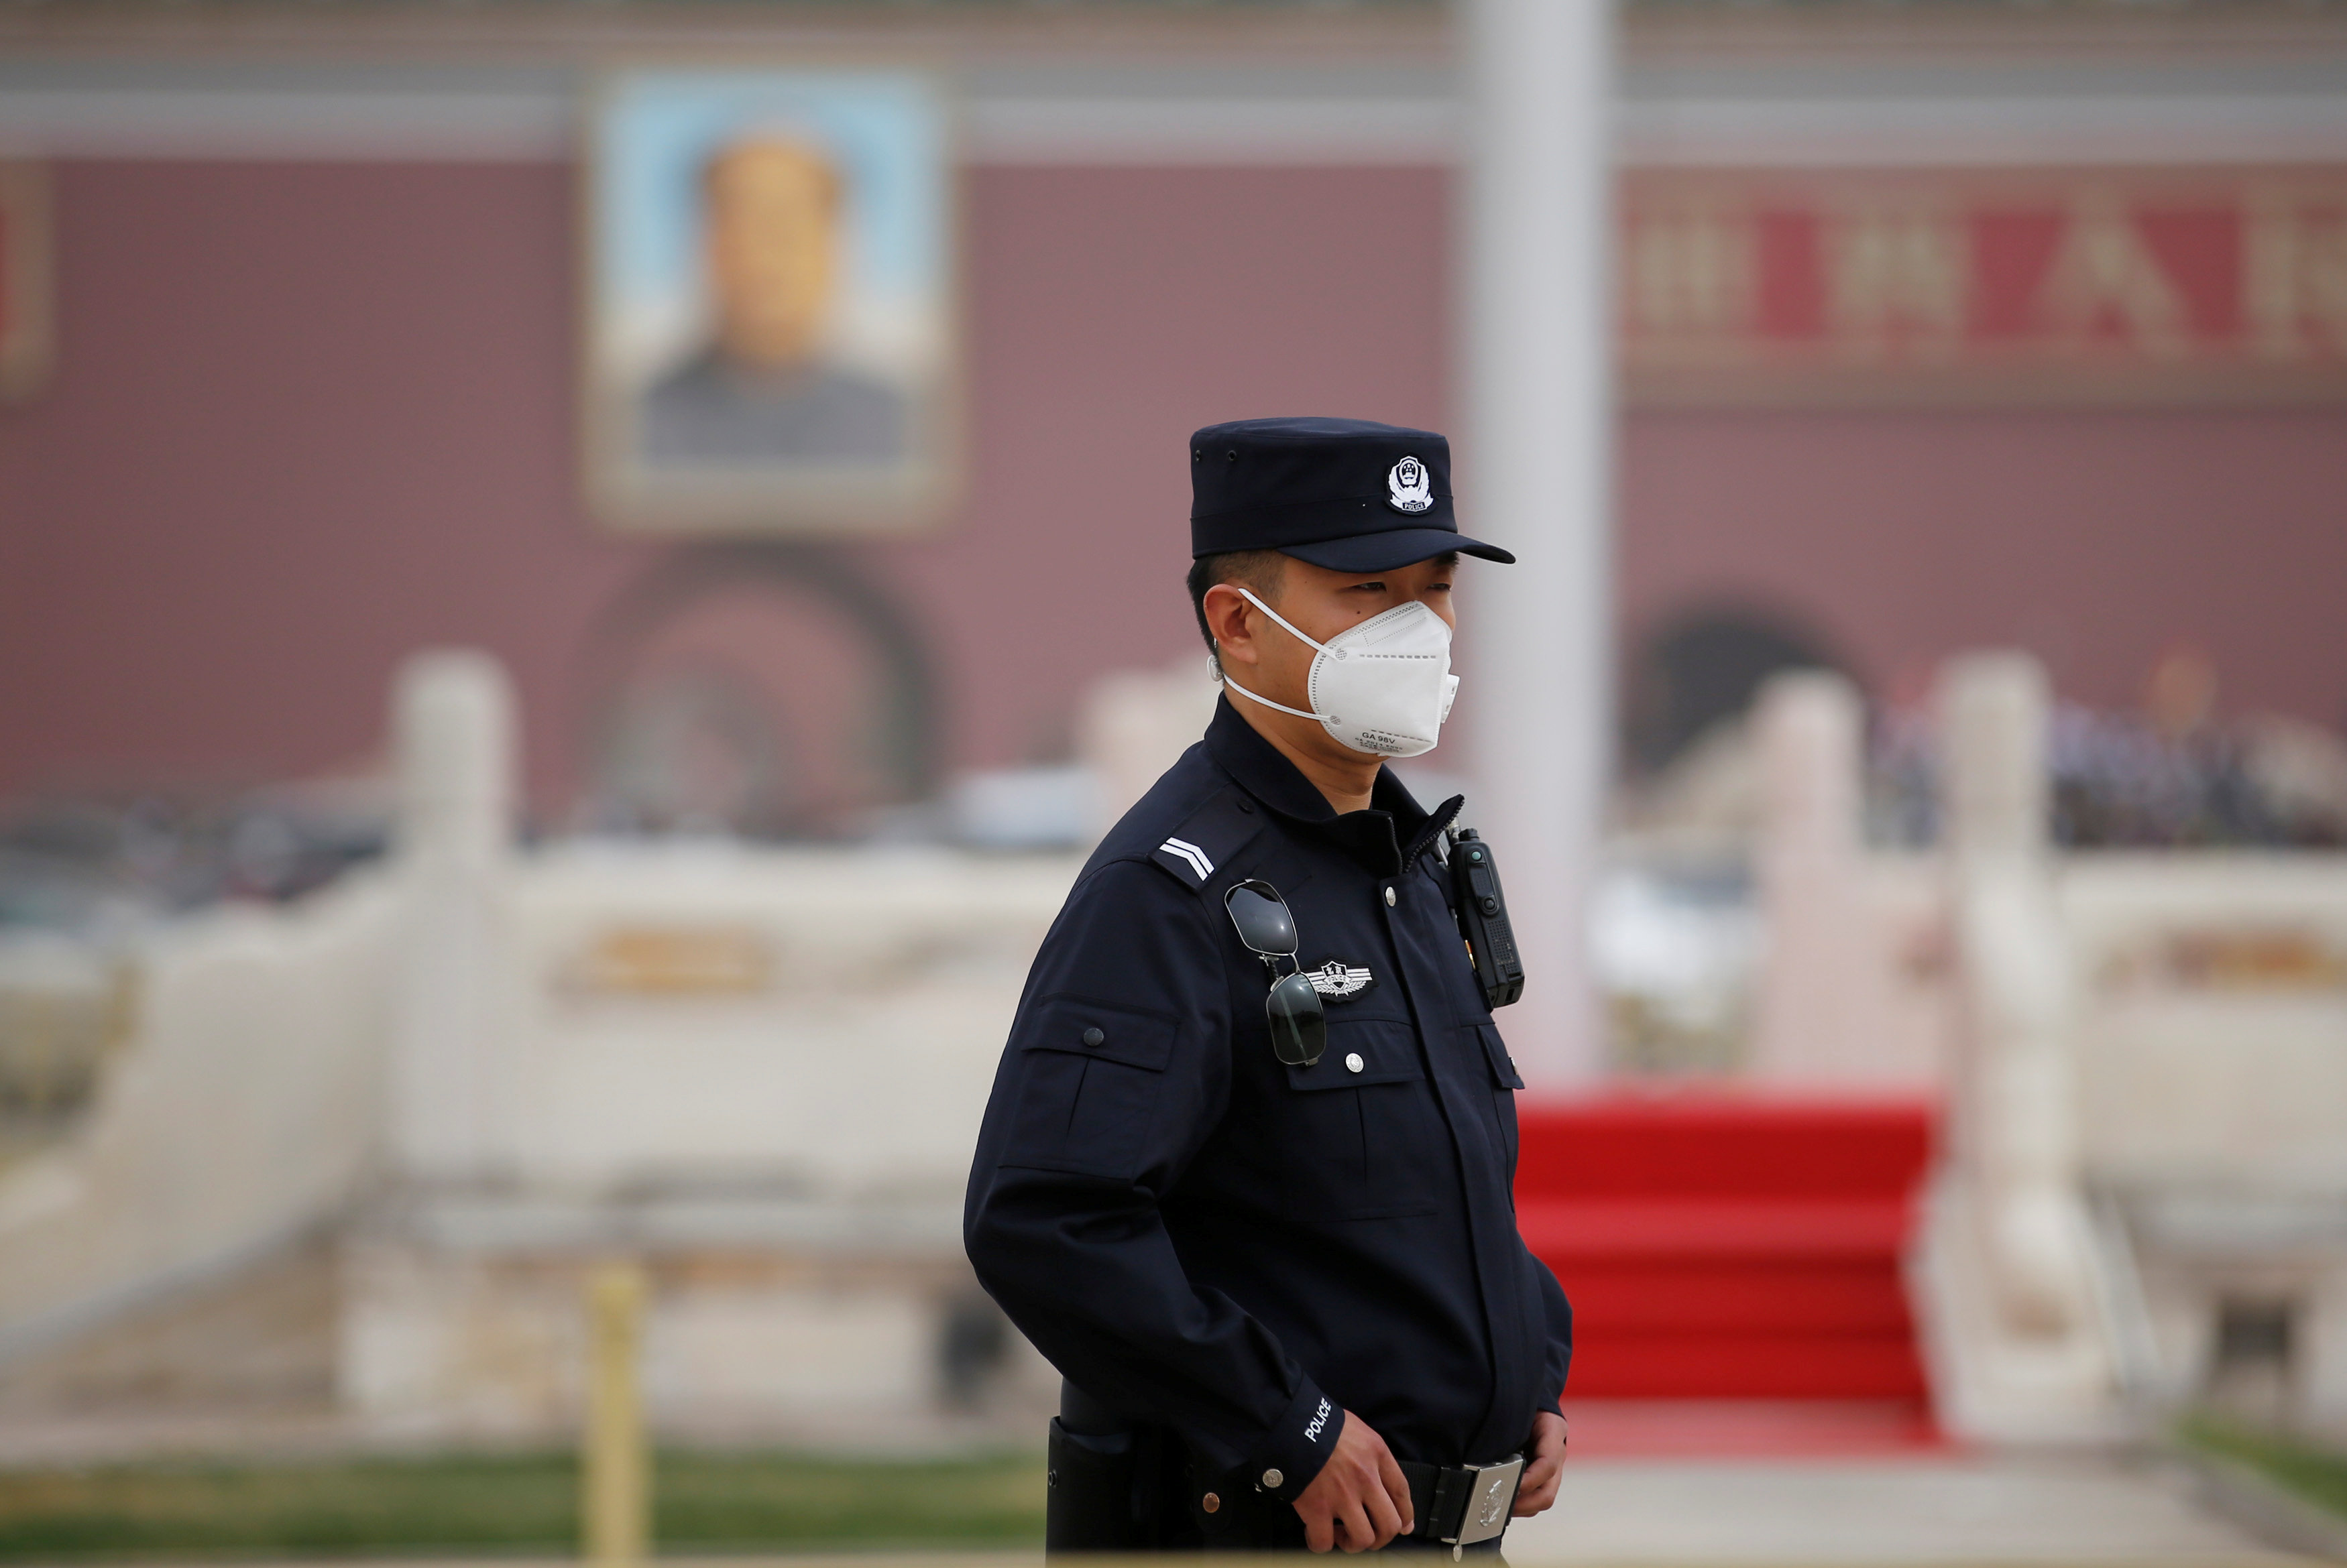 A policeman wearing a mask keeps watch at Tiananmen Square as a dust storm hits Beijing, China March 28, 2018. REUTERS/Jason Lee